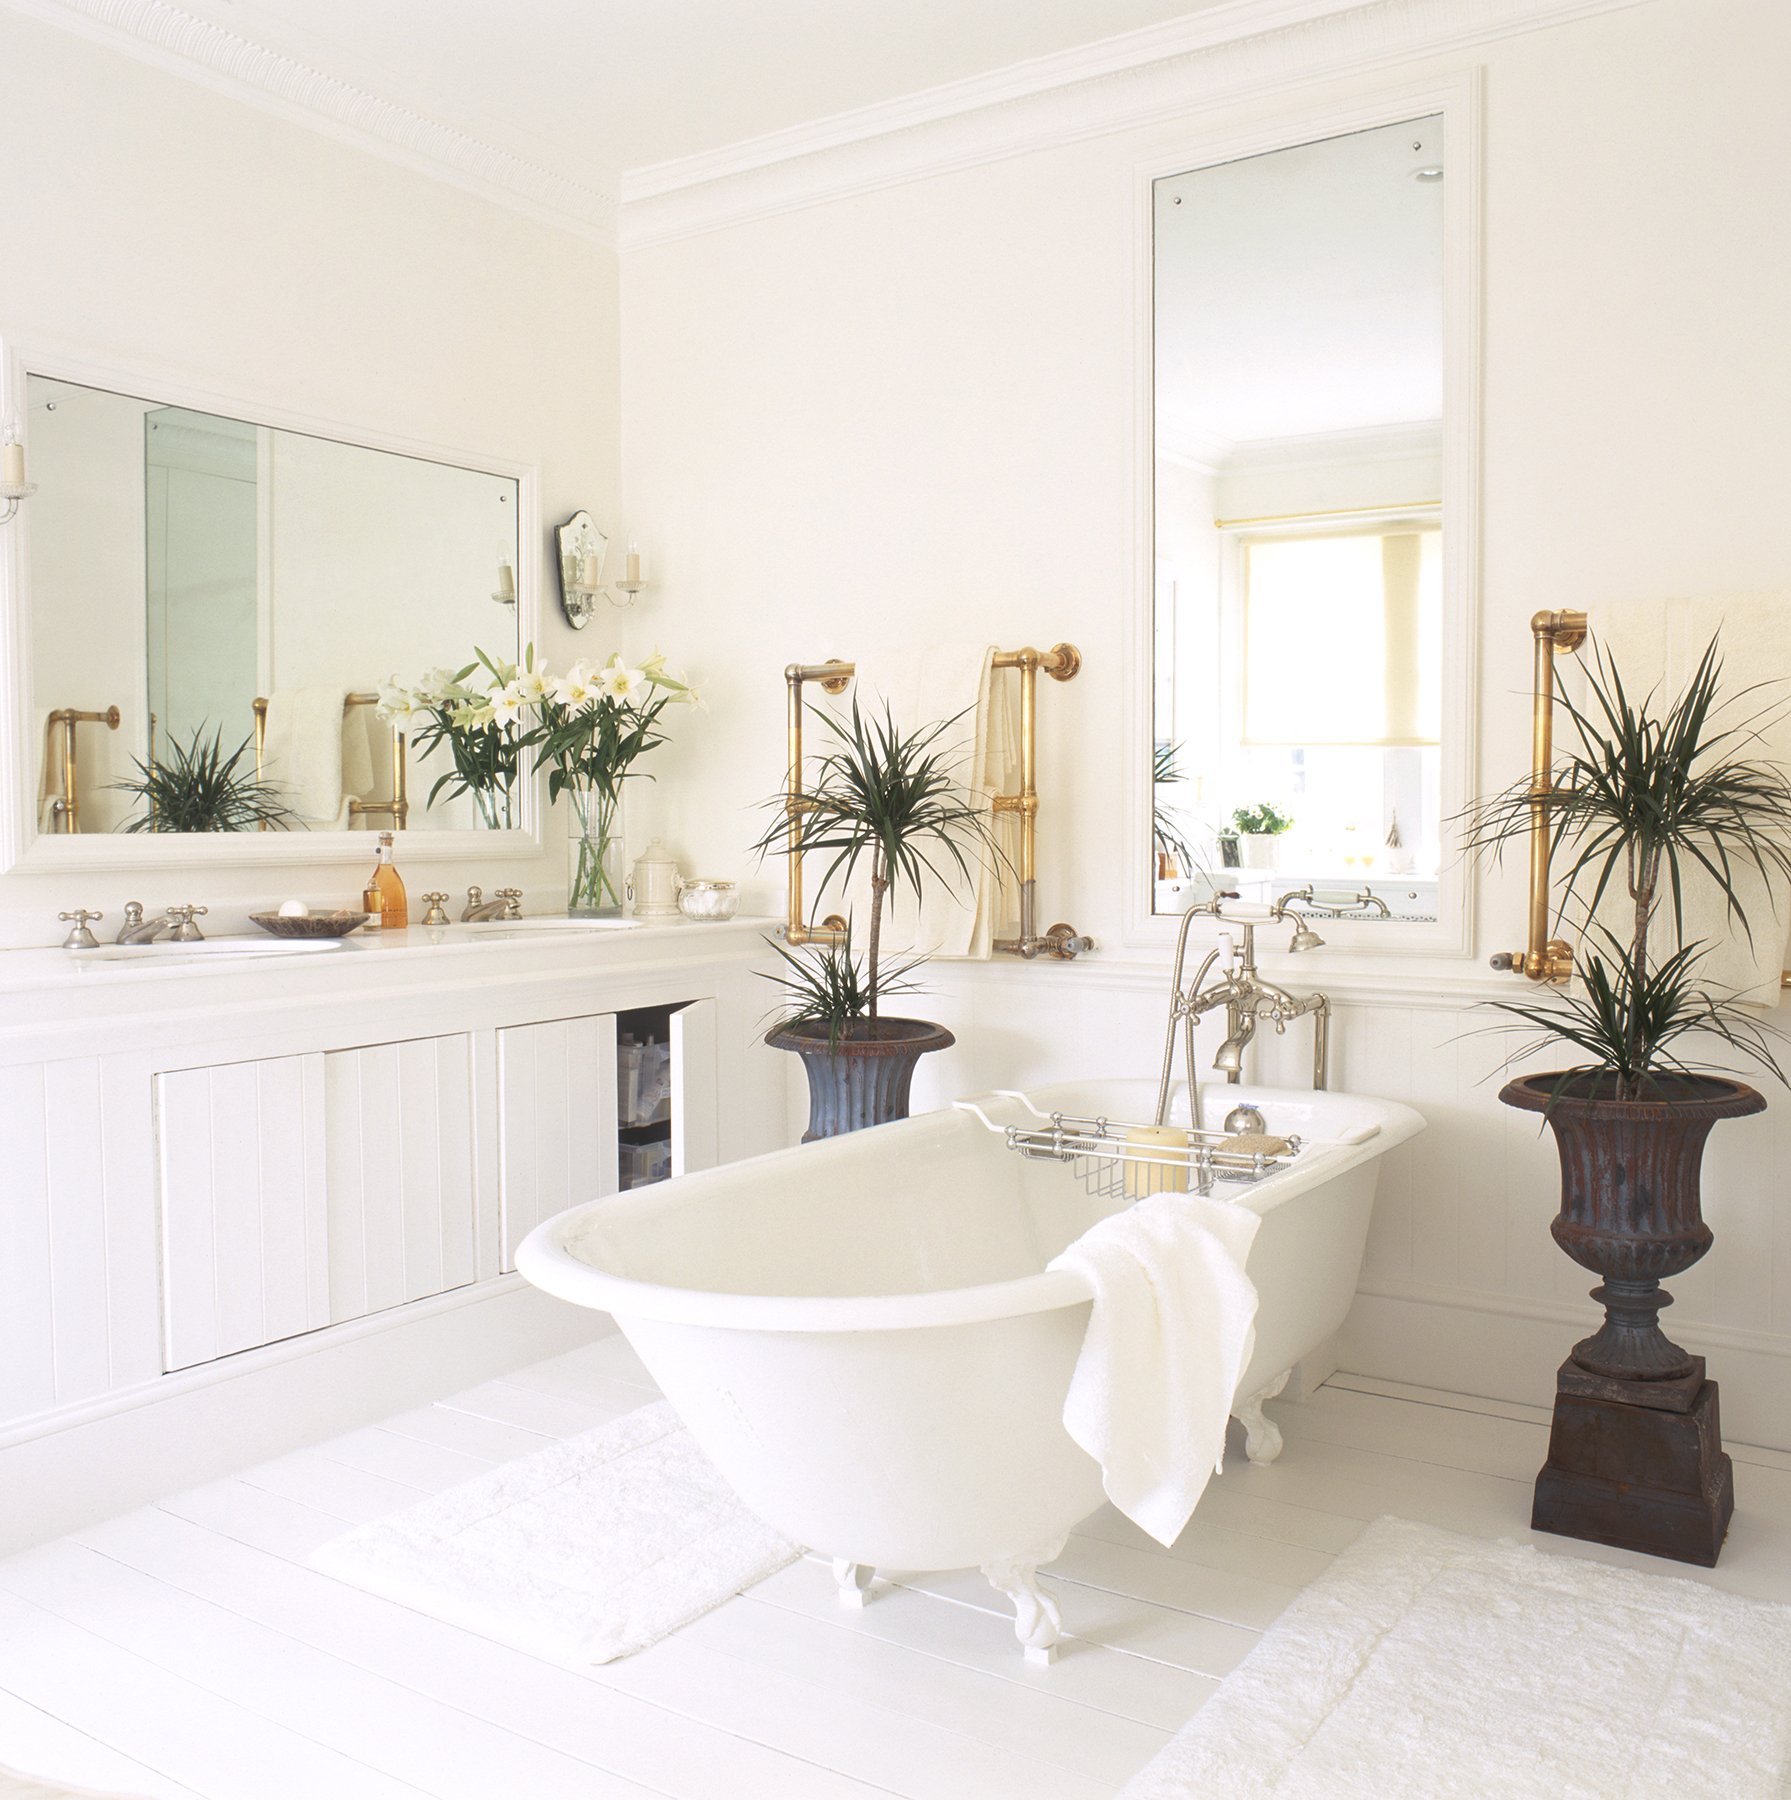 Bathroom with plants and clawfoot tub